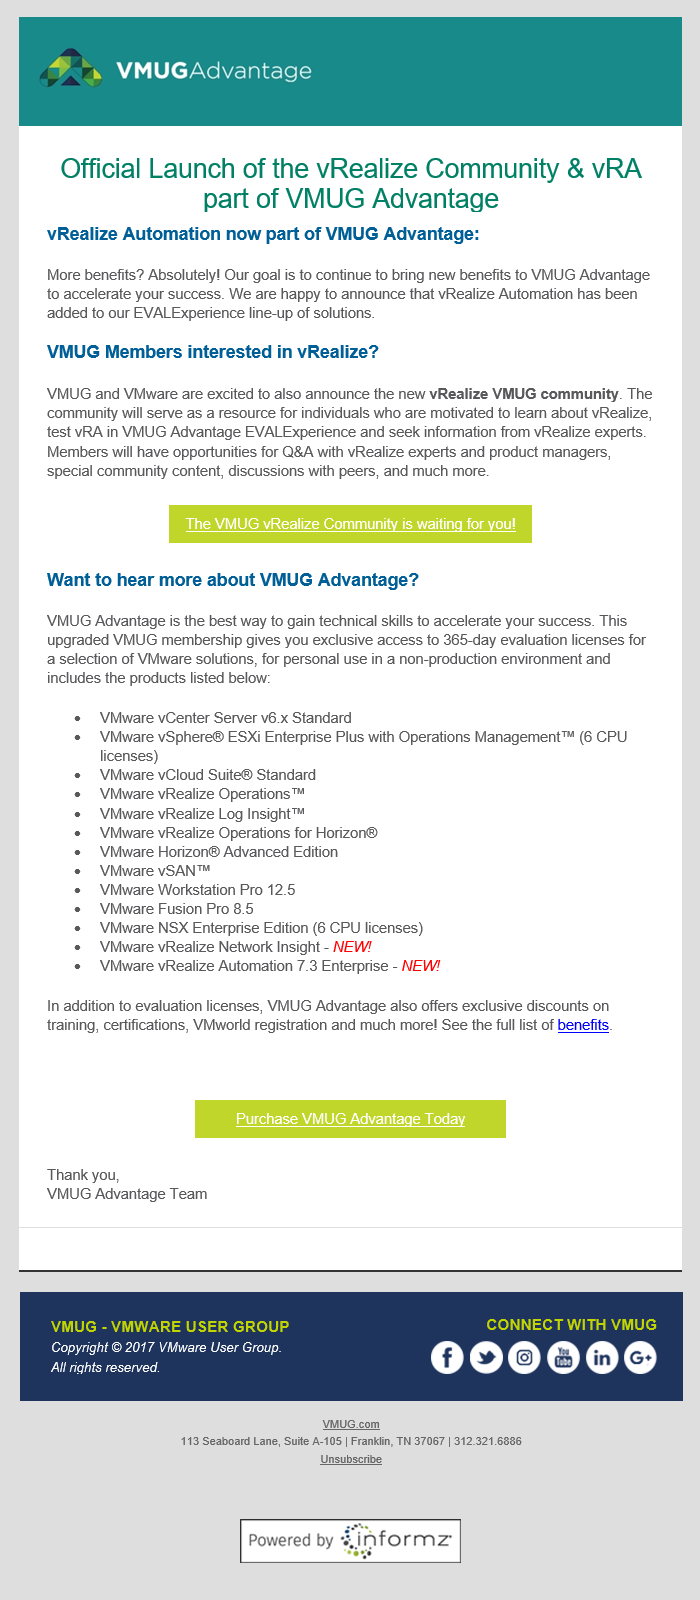 vRealize_Community_and_vRA_in_VMUG_Advantage